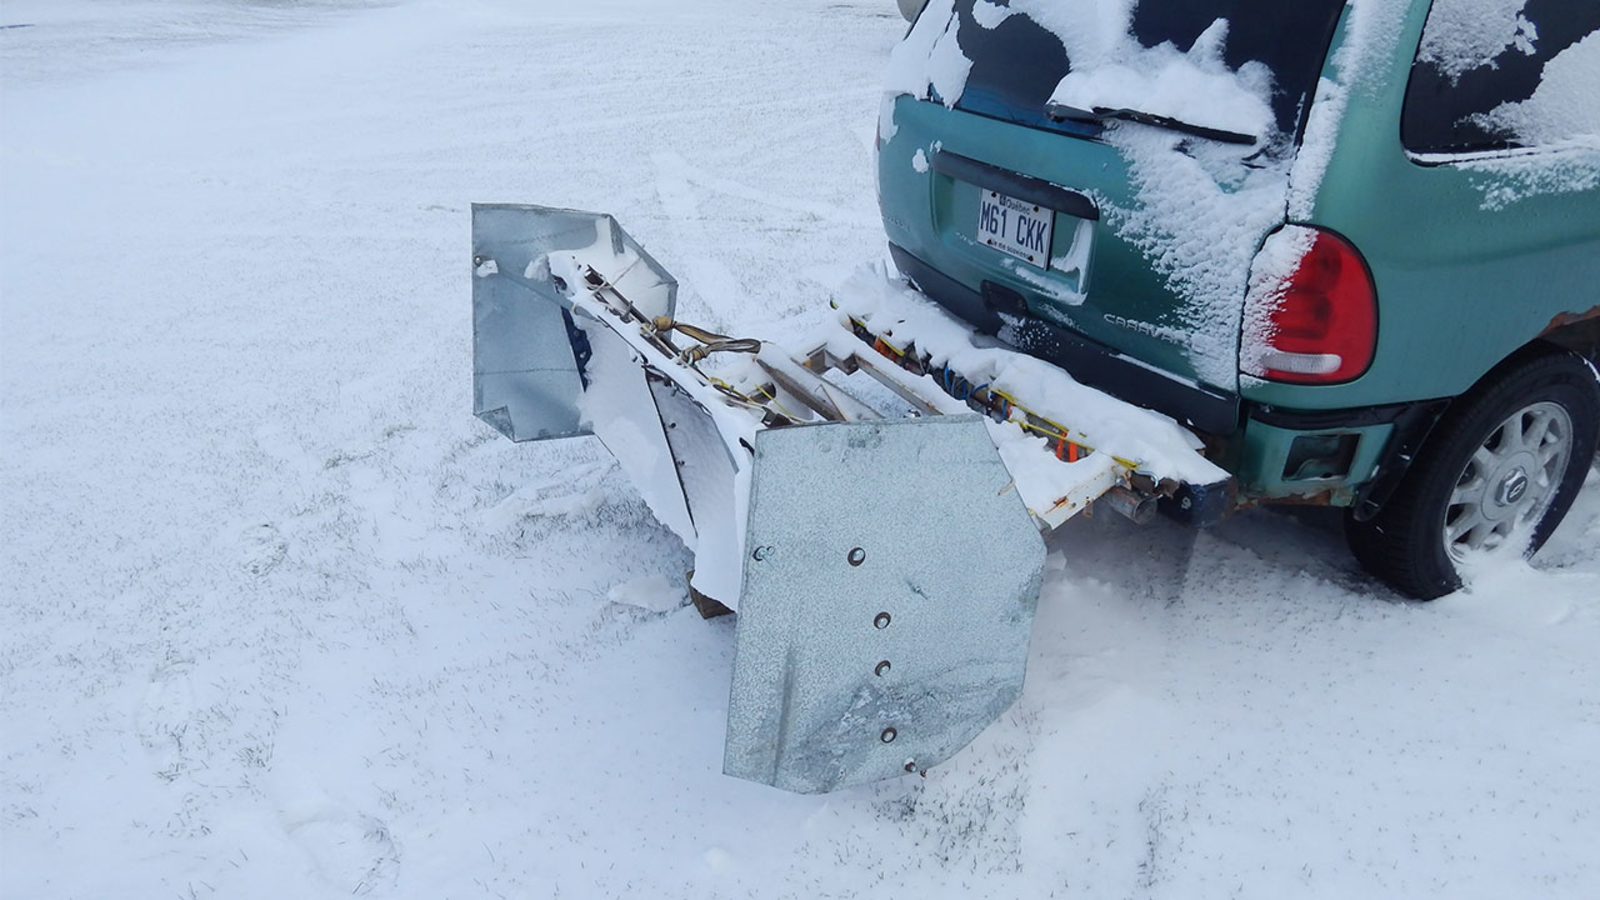 Canada man builds homemade snow plow to